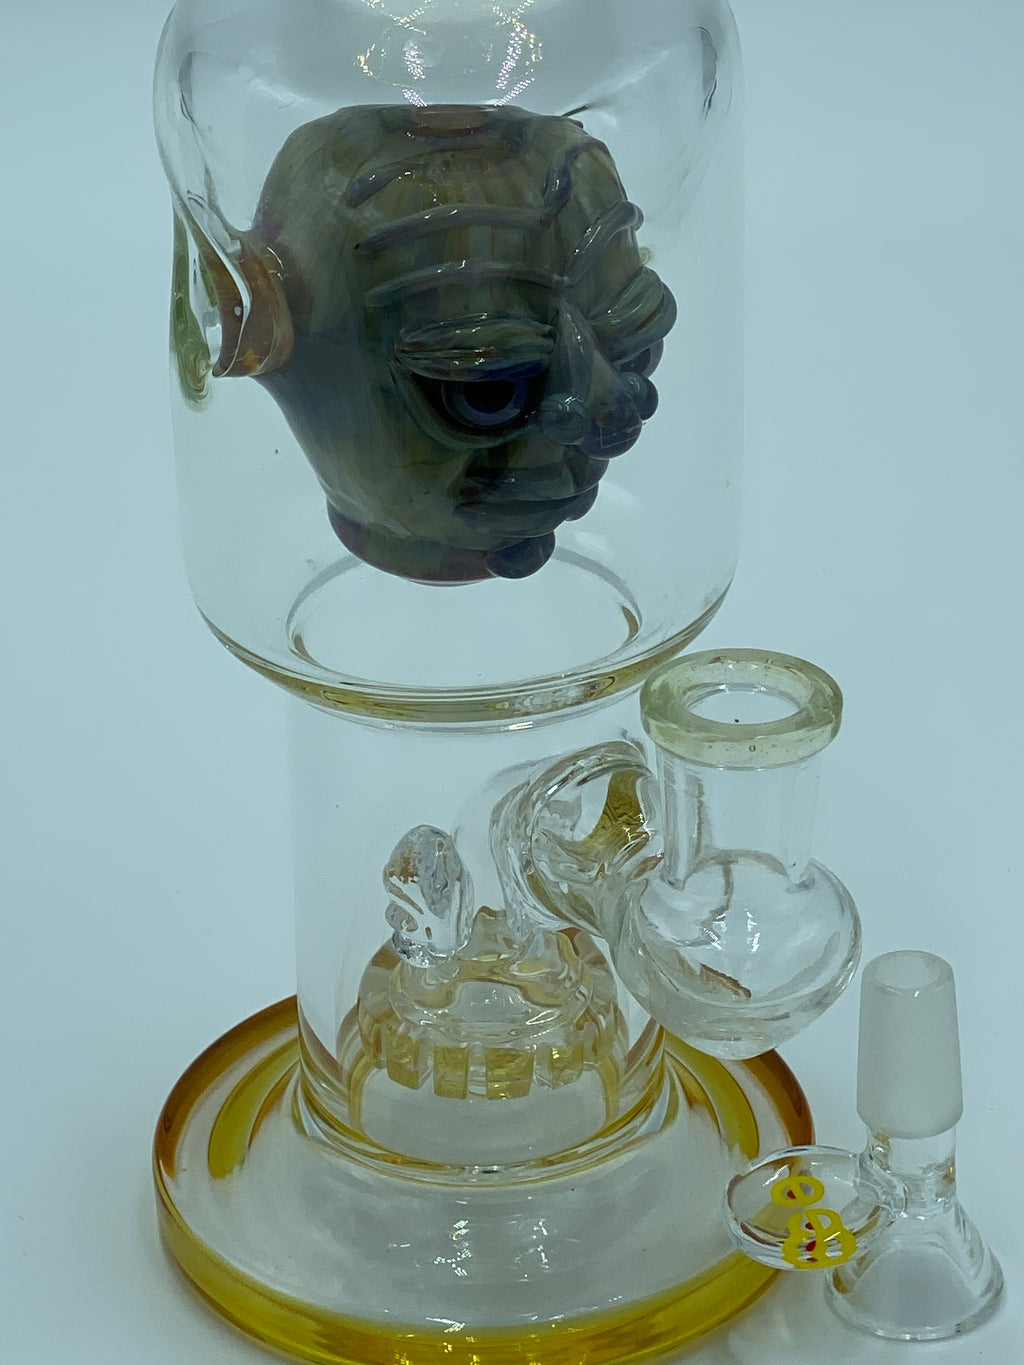 Cheech Glass Amber Goblin Percolator - Smoke Country - Land of the artistic glass blown bongs